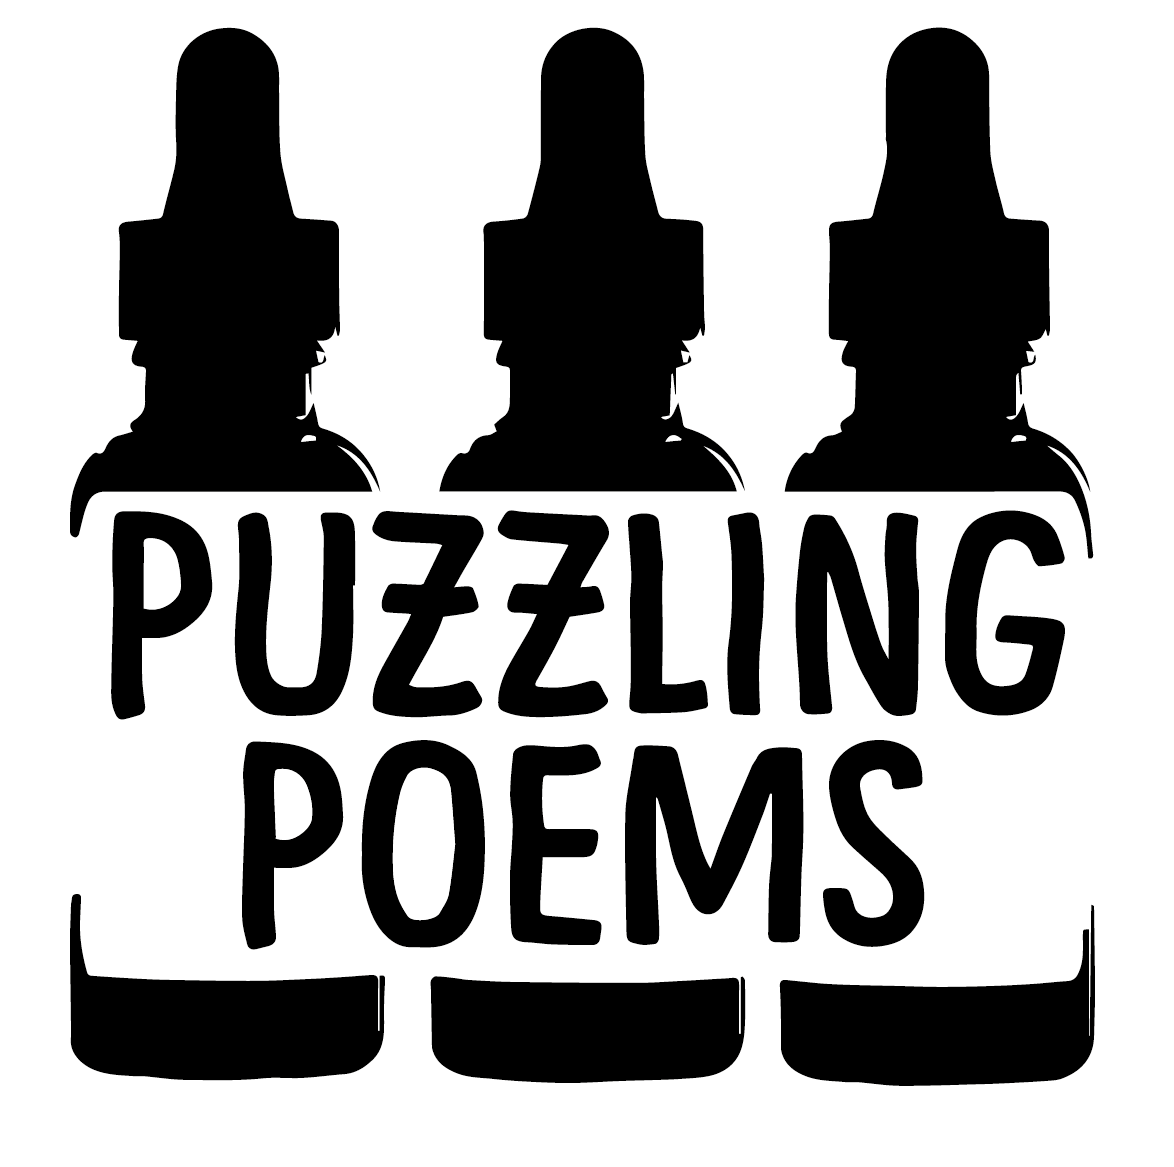 PUZZLING POEMS